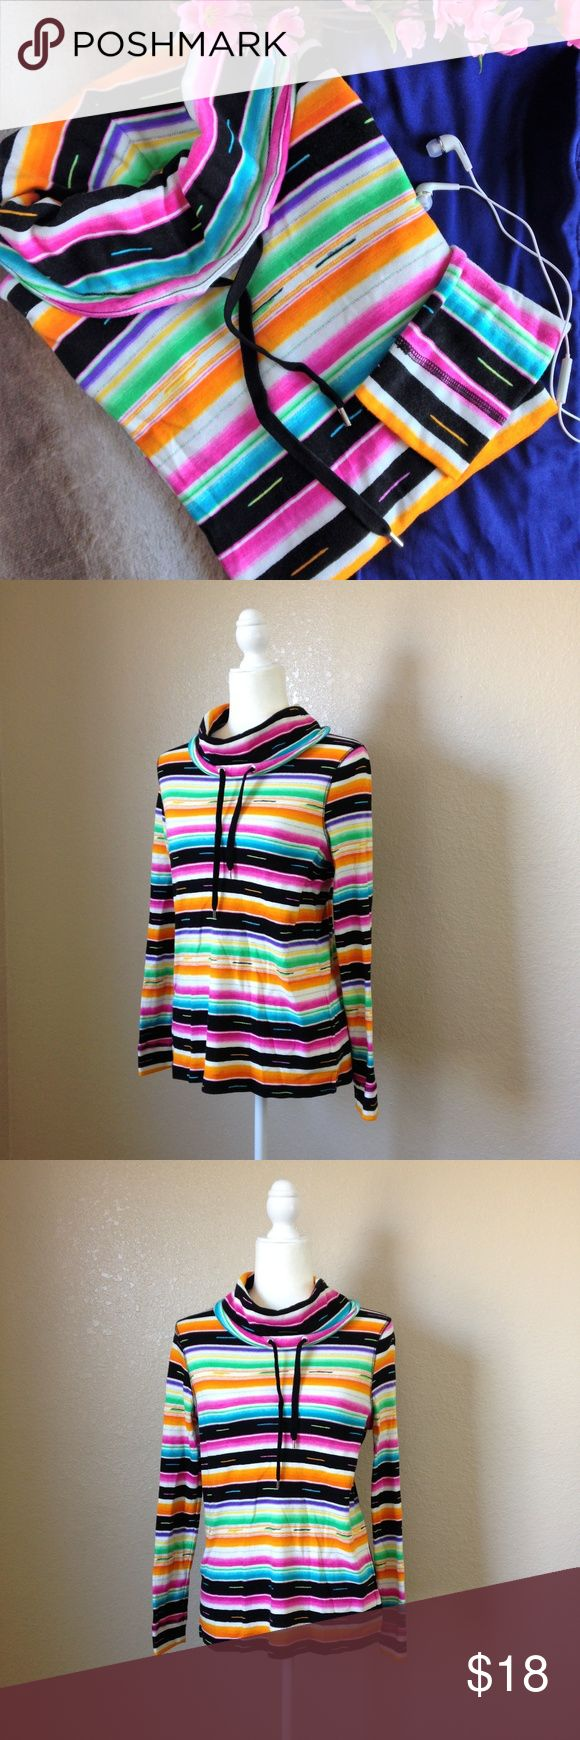 """Chaps Striped Cowl Neck Long Sleeve Top Super cute Chaps Sport running top, in adorable multicolor stripes. Features drawstring cowl neck, long sleeves and side slits. Gently used, 100% cotton, size S. Approximate measurements when laid flat are 18"""" bust and 23"""" long. Chaps Tops"""